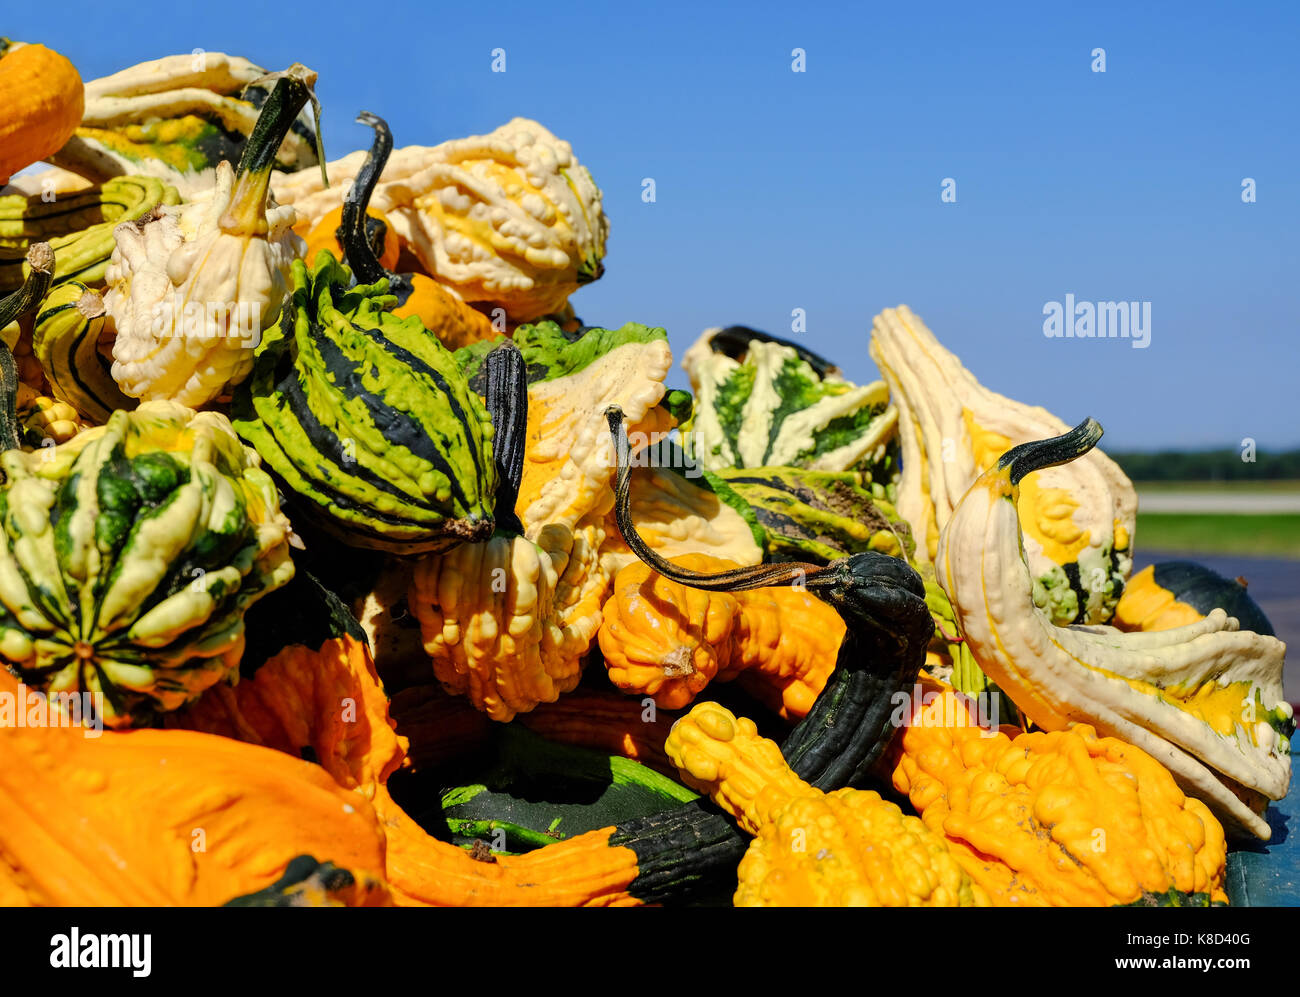 Pile of Pumpkins with Warts at a fresh market. Copy space. - Stock Image